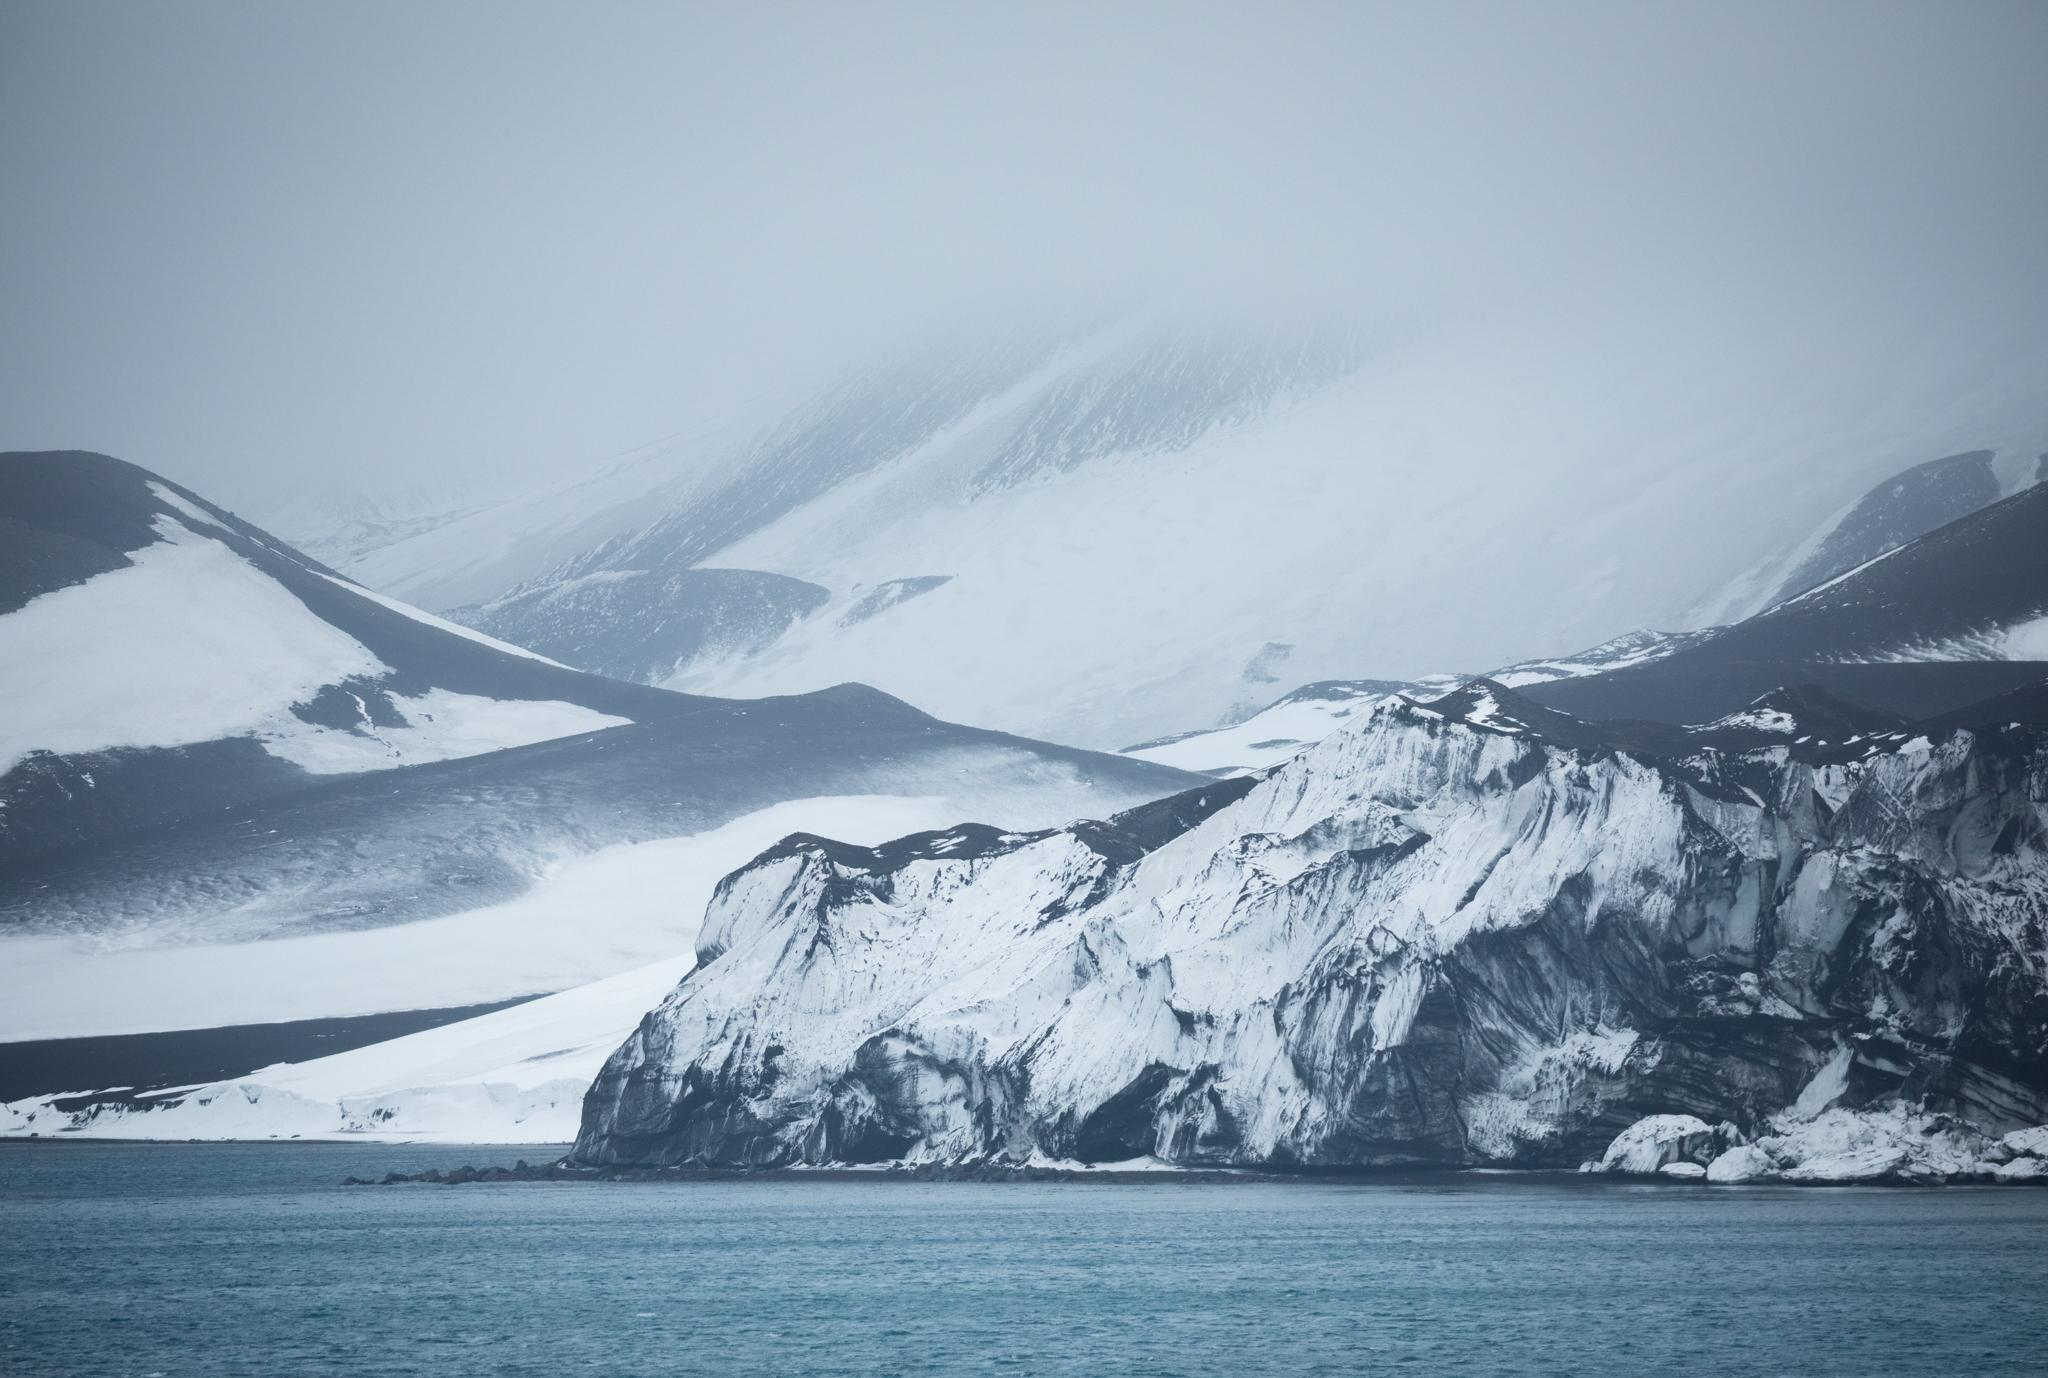 The glaciated inner coastline of Deception Island, blackened by volcanic ash - a striking interaction of fire and ice.